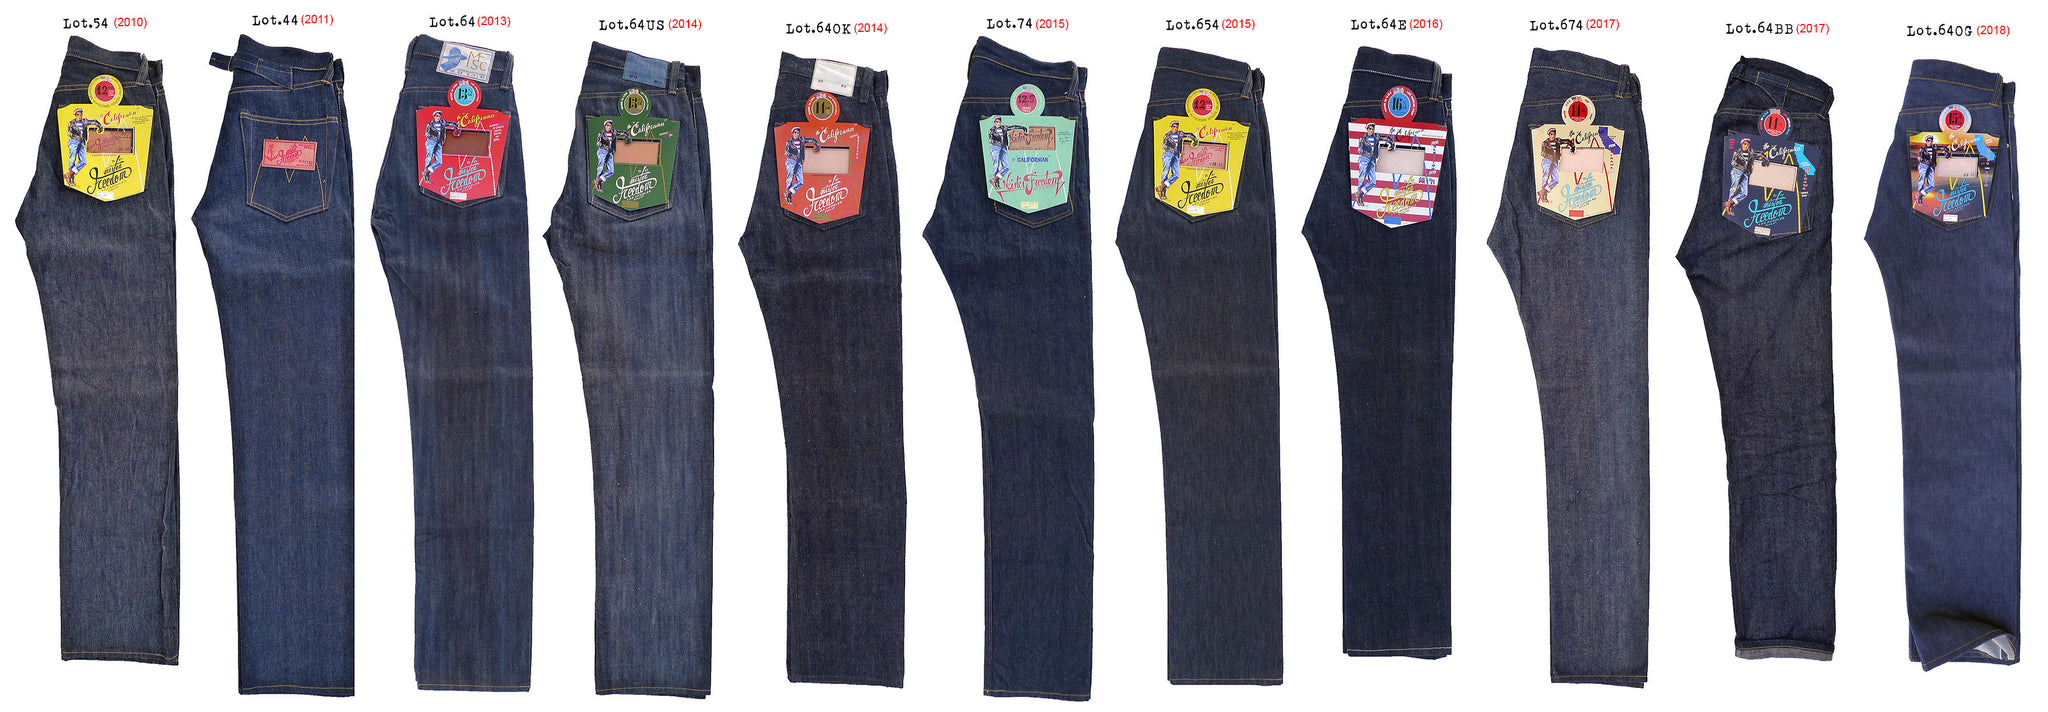 Mister Freedom®CALIFORNIAN Family - Blue Jeans made in USA